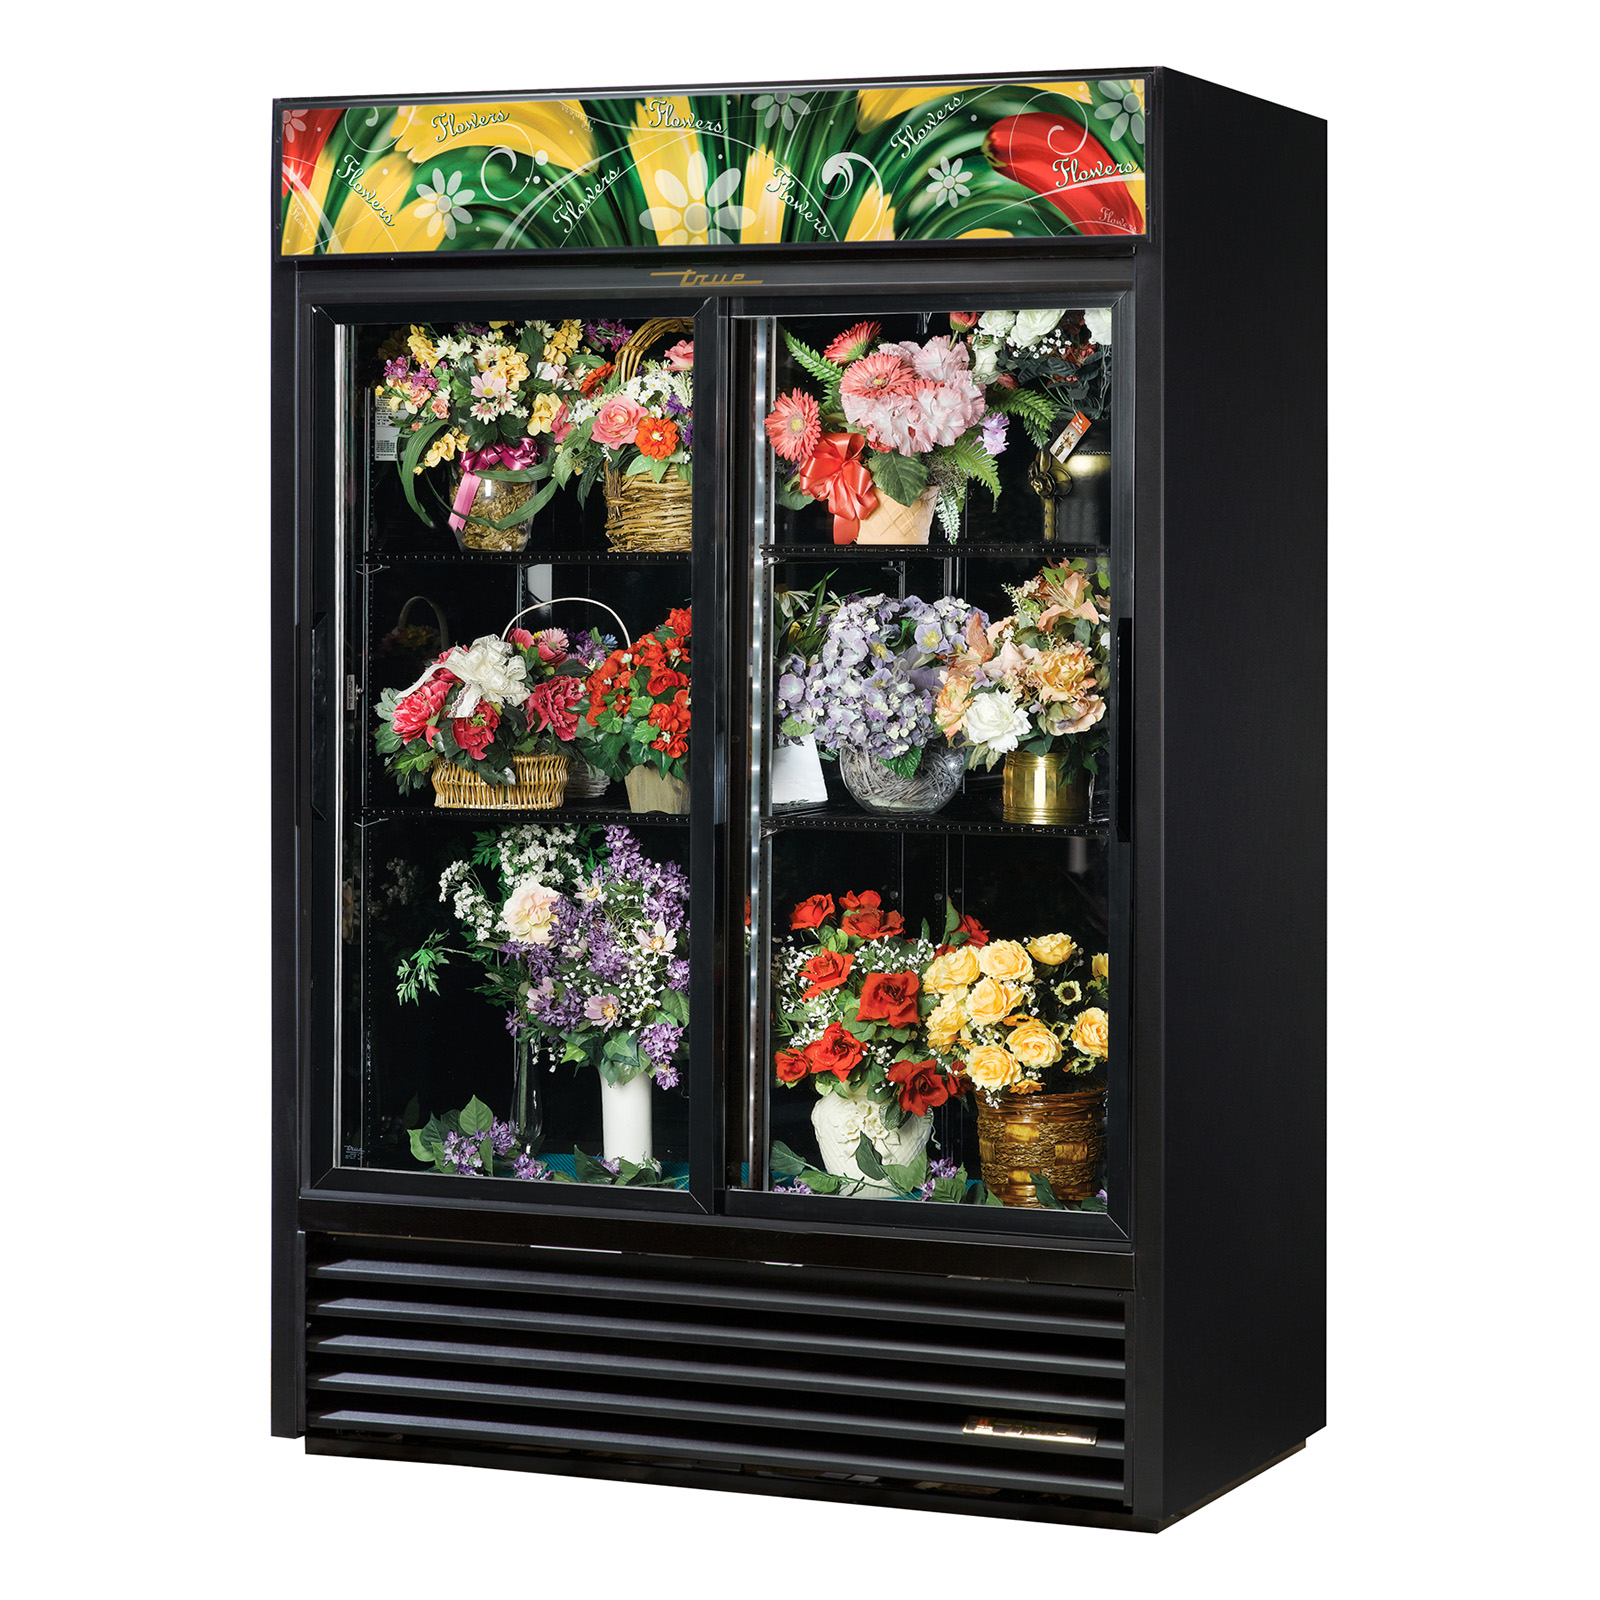 GDM-47FC-LD – True Display Floral Chiller